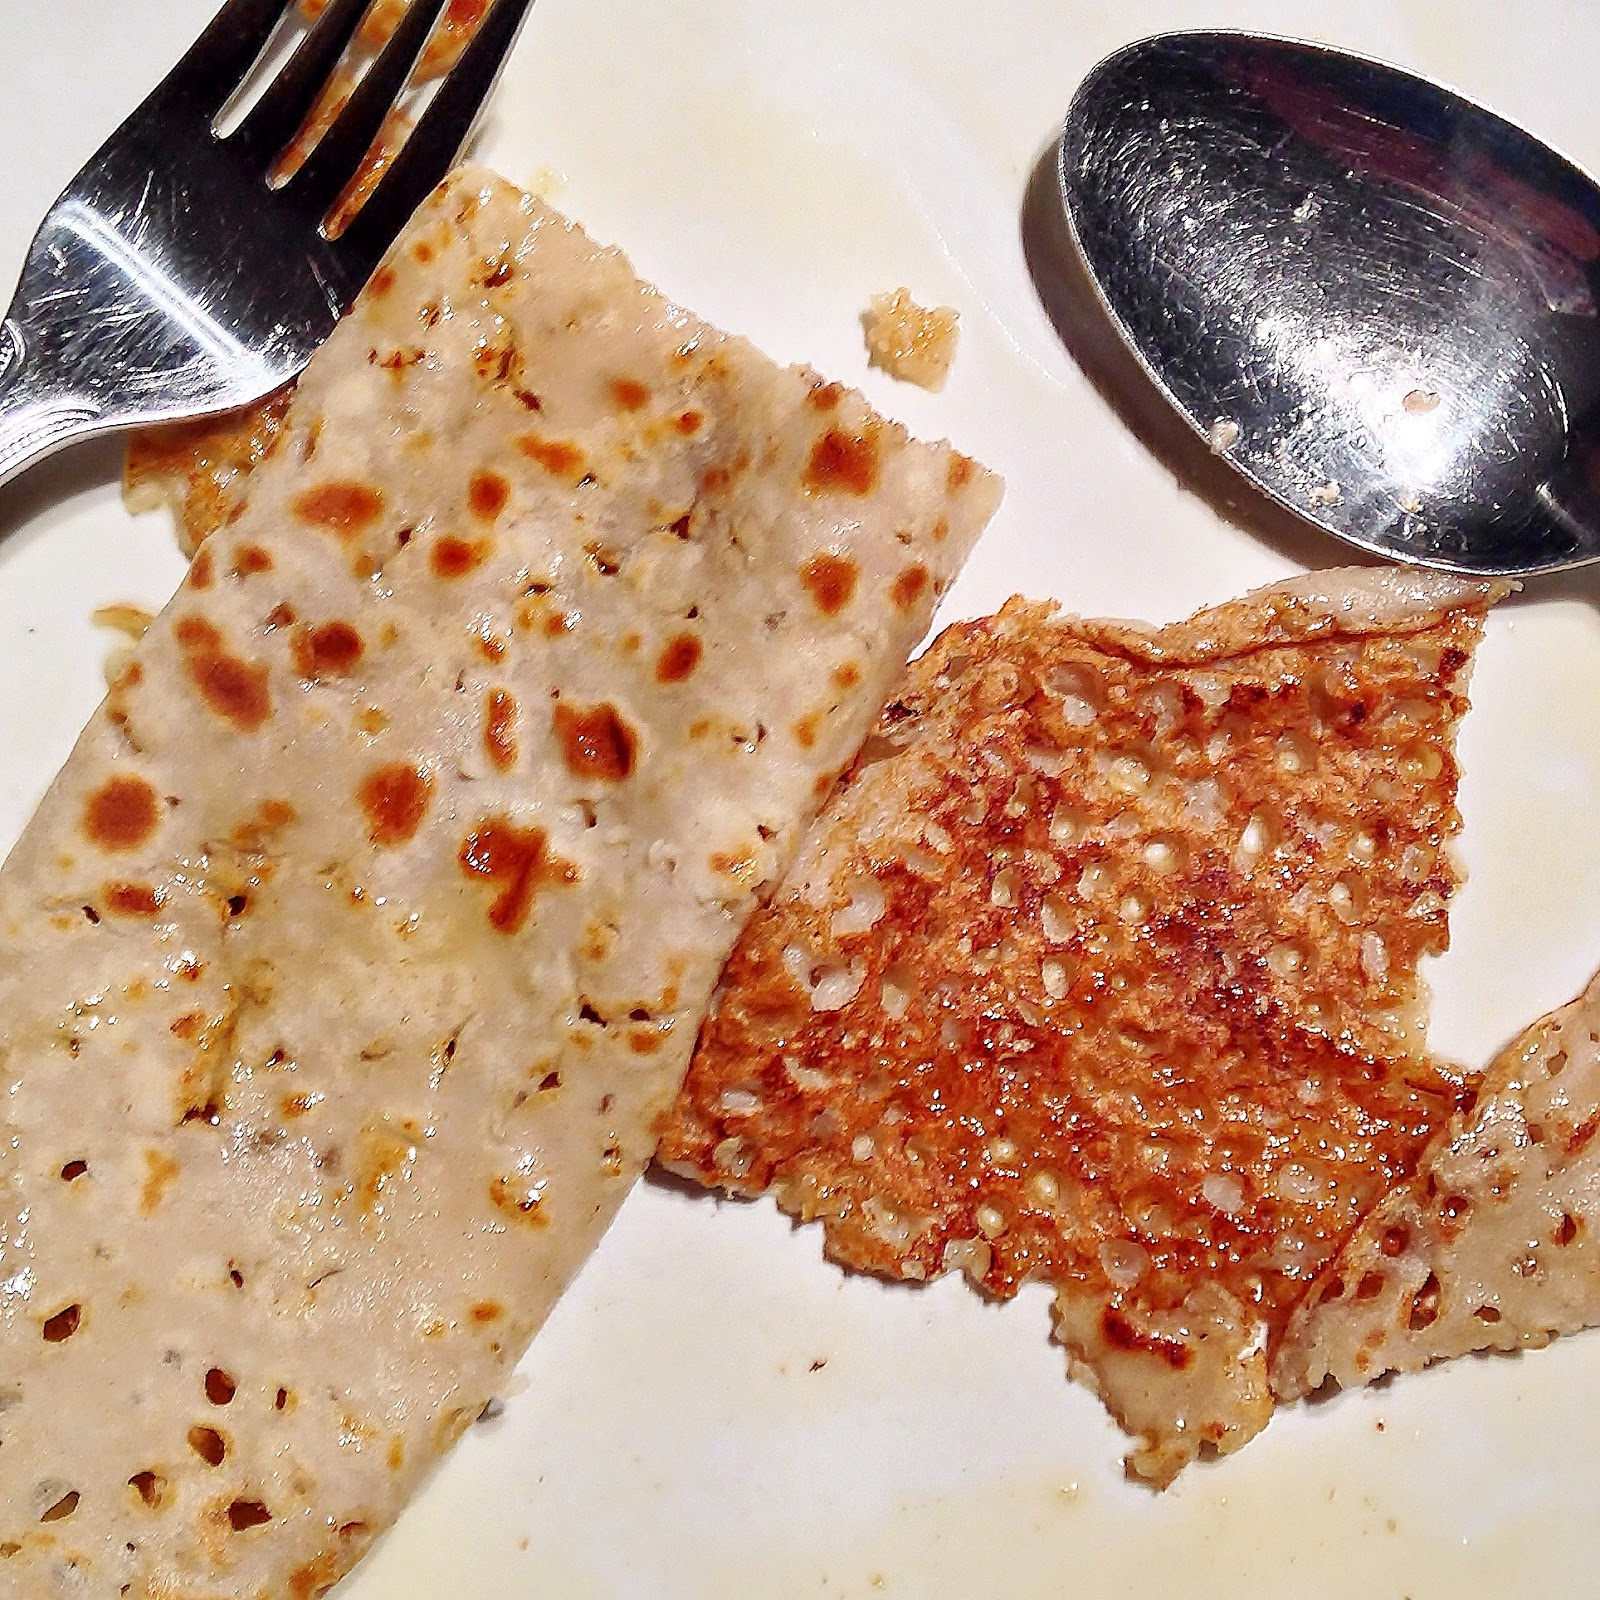 Buckwheat crepes with maple syrup